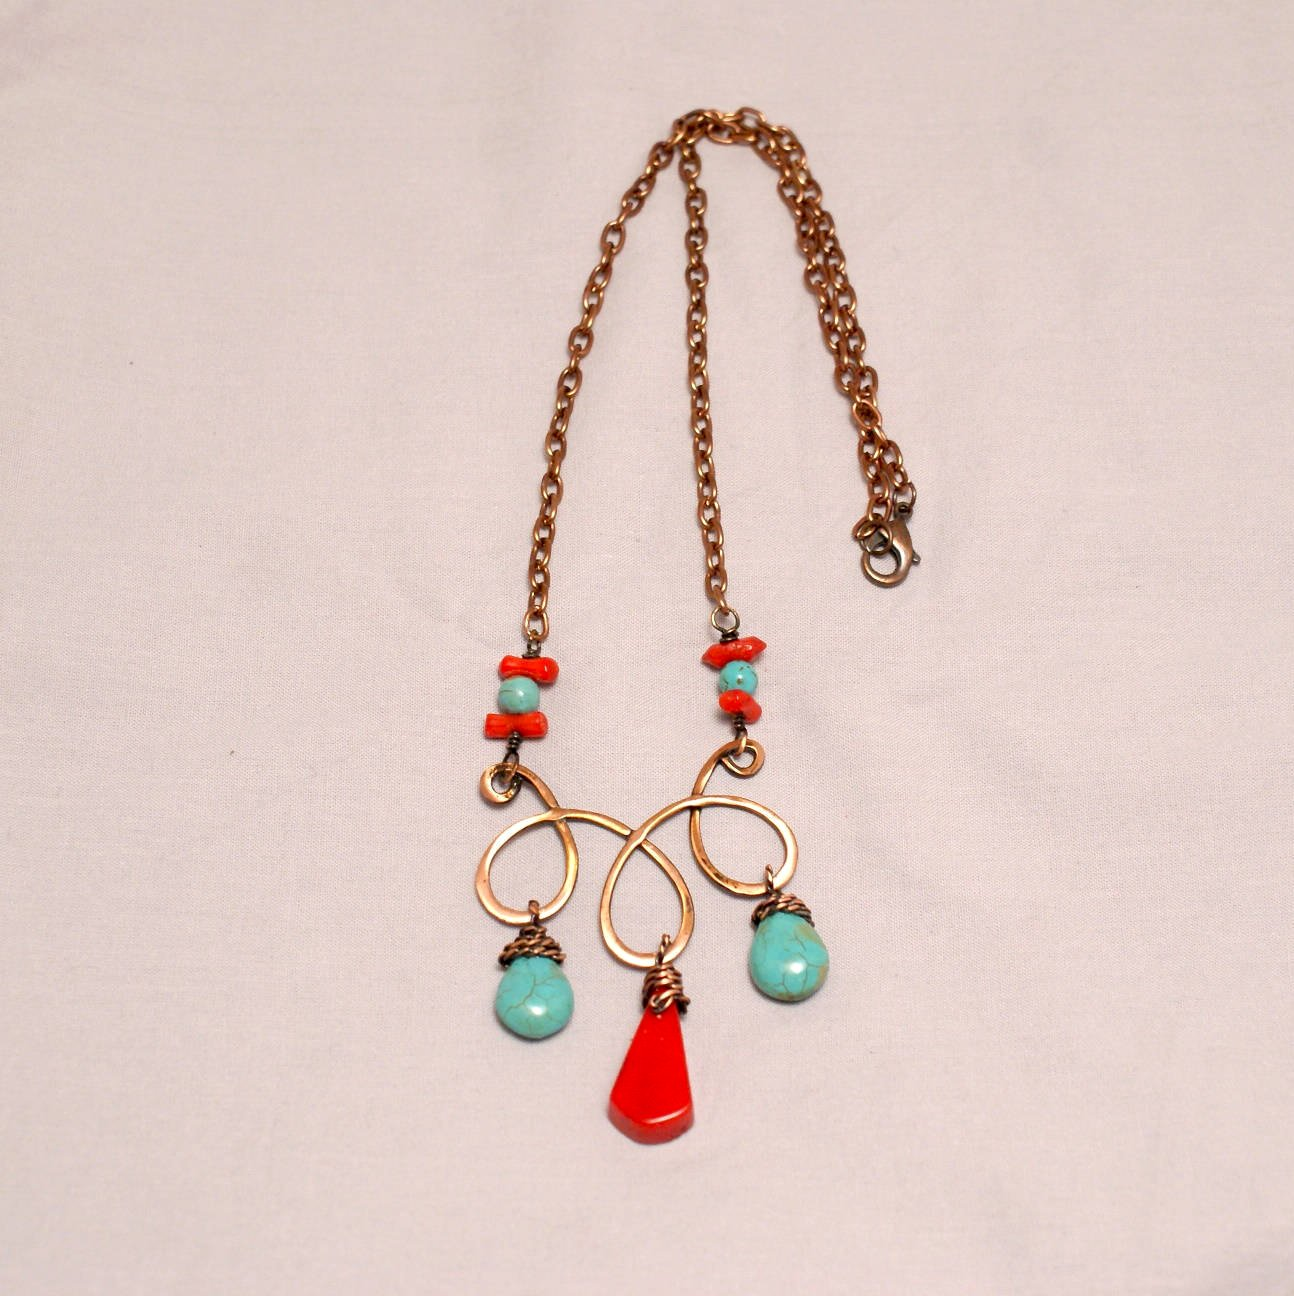 Handmade Turquoise and Red Statement Necklace - Babazen